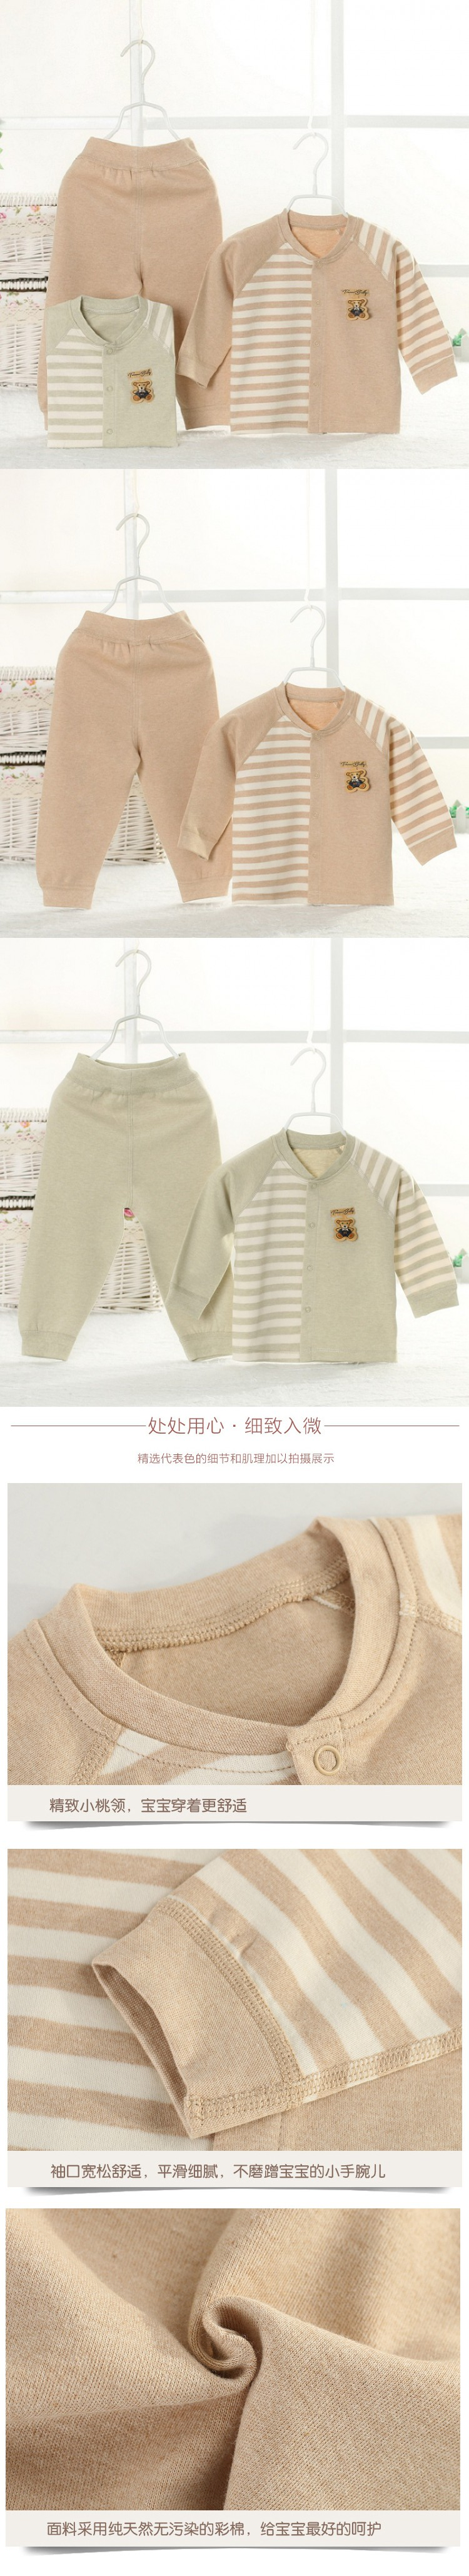 974a9cfe1 2pcs set High quality Baby clothes pure cotton baby underwear ...